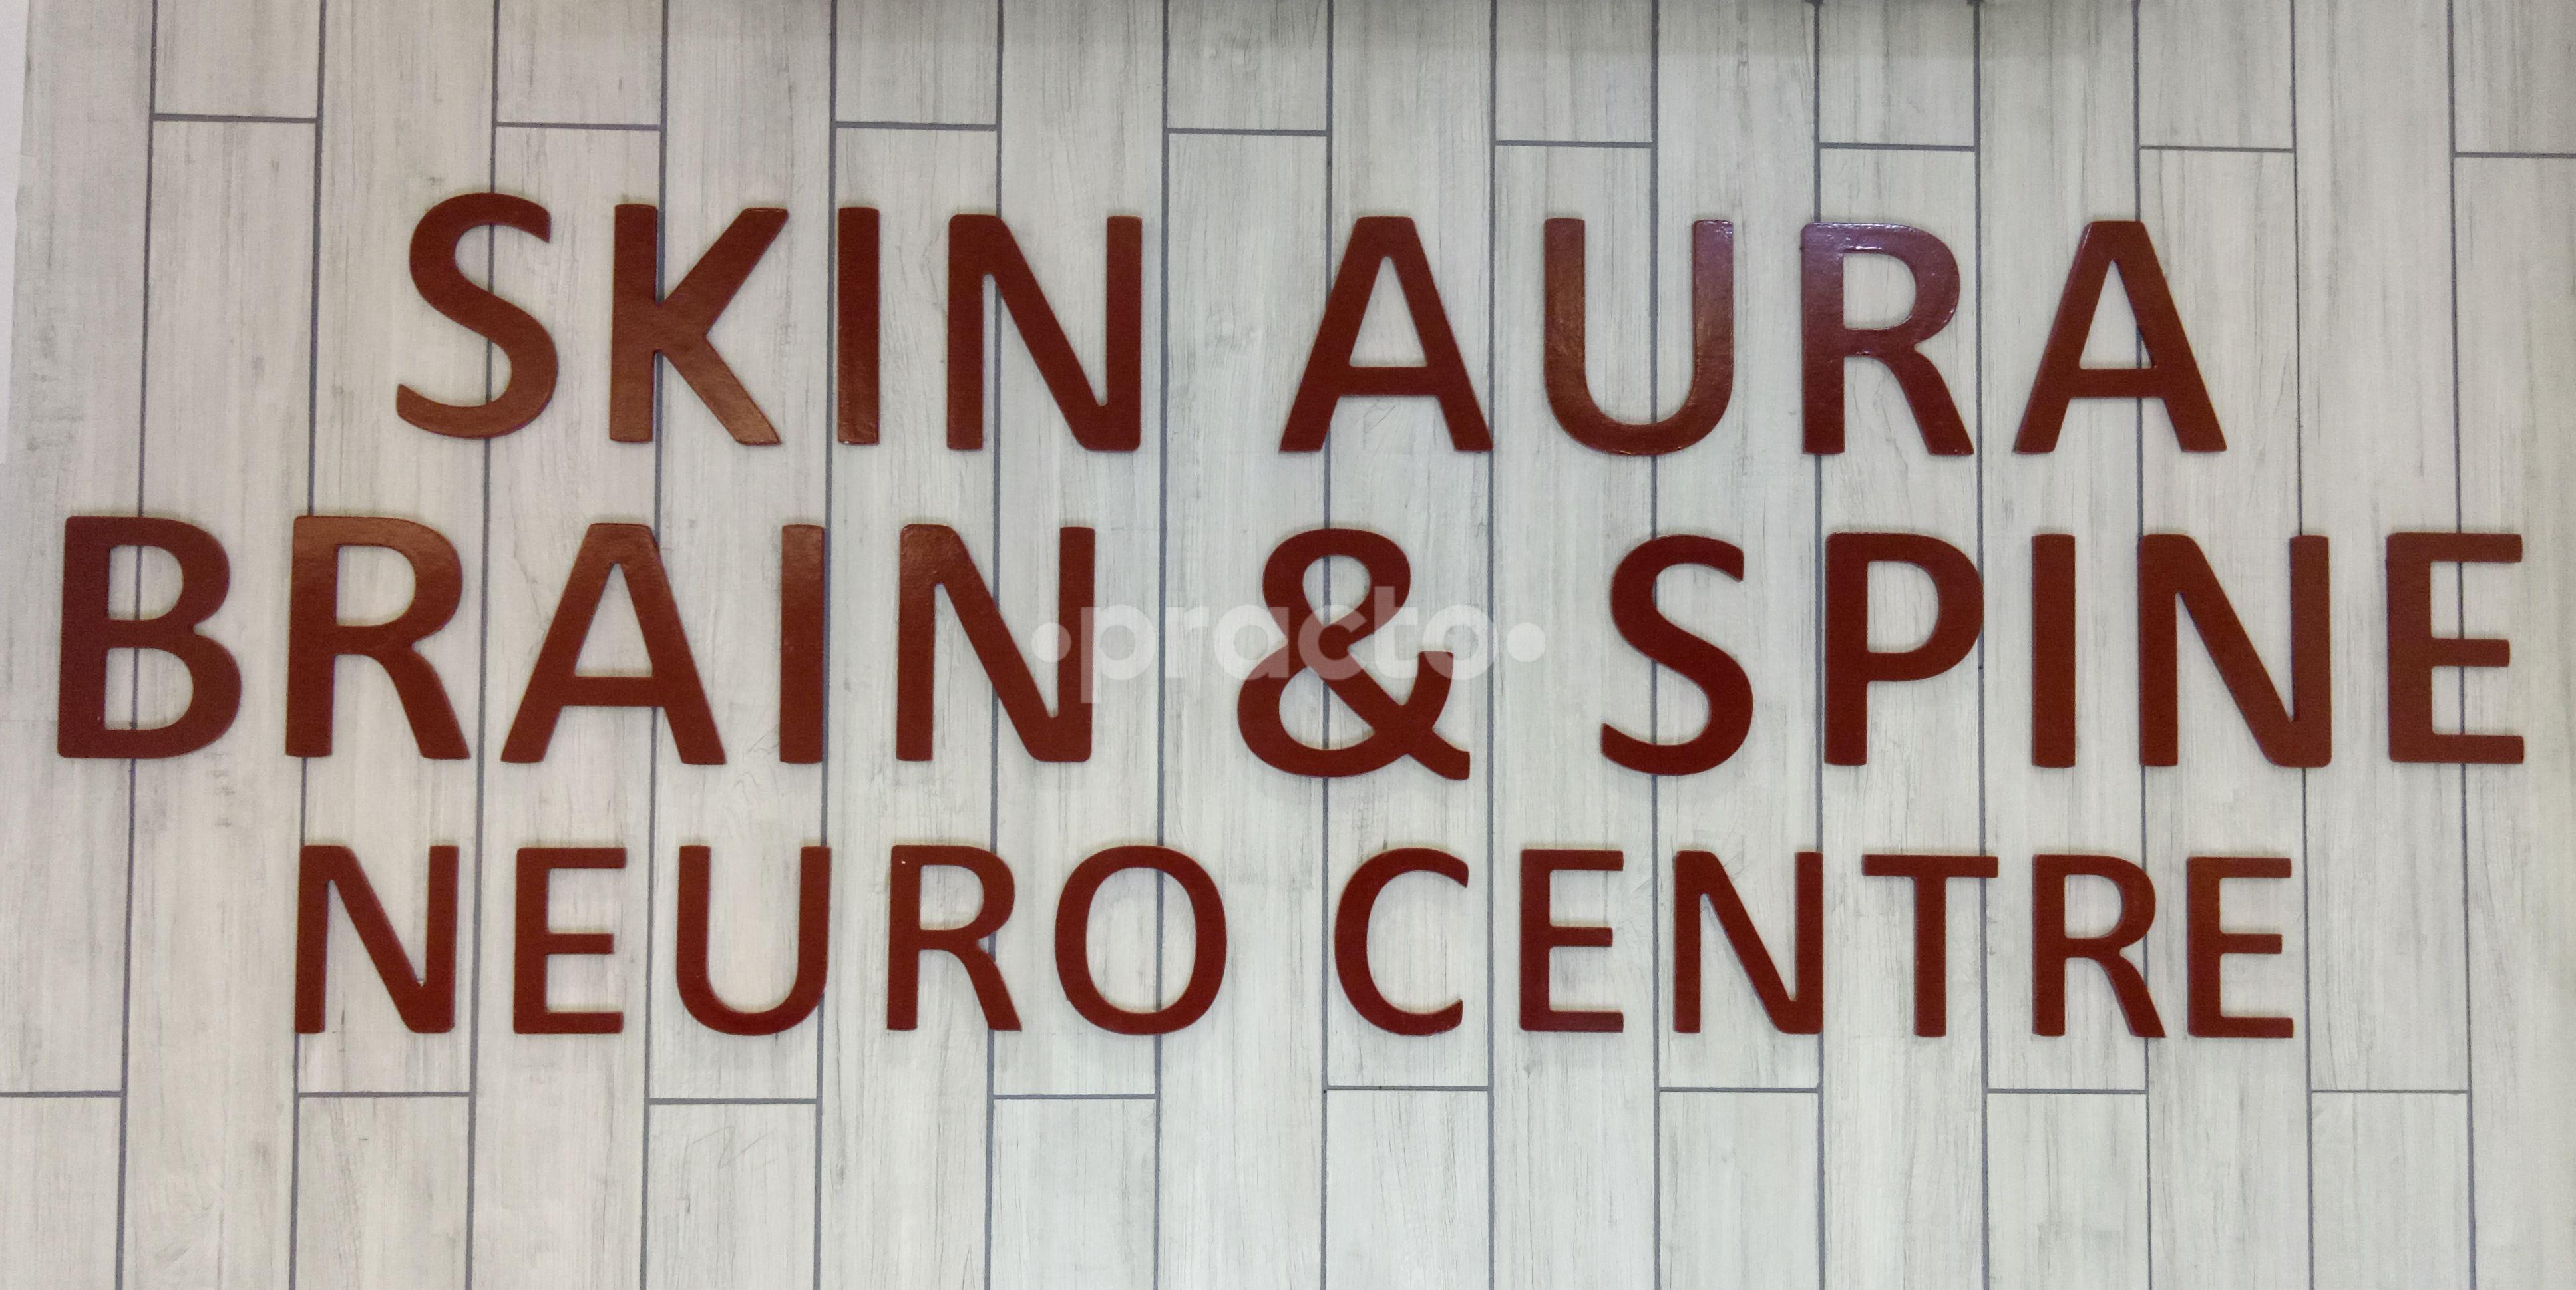 Skin Aura Brain & Spine Neuro Centre